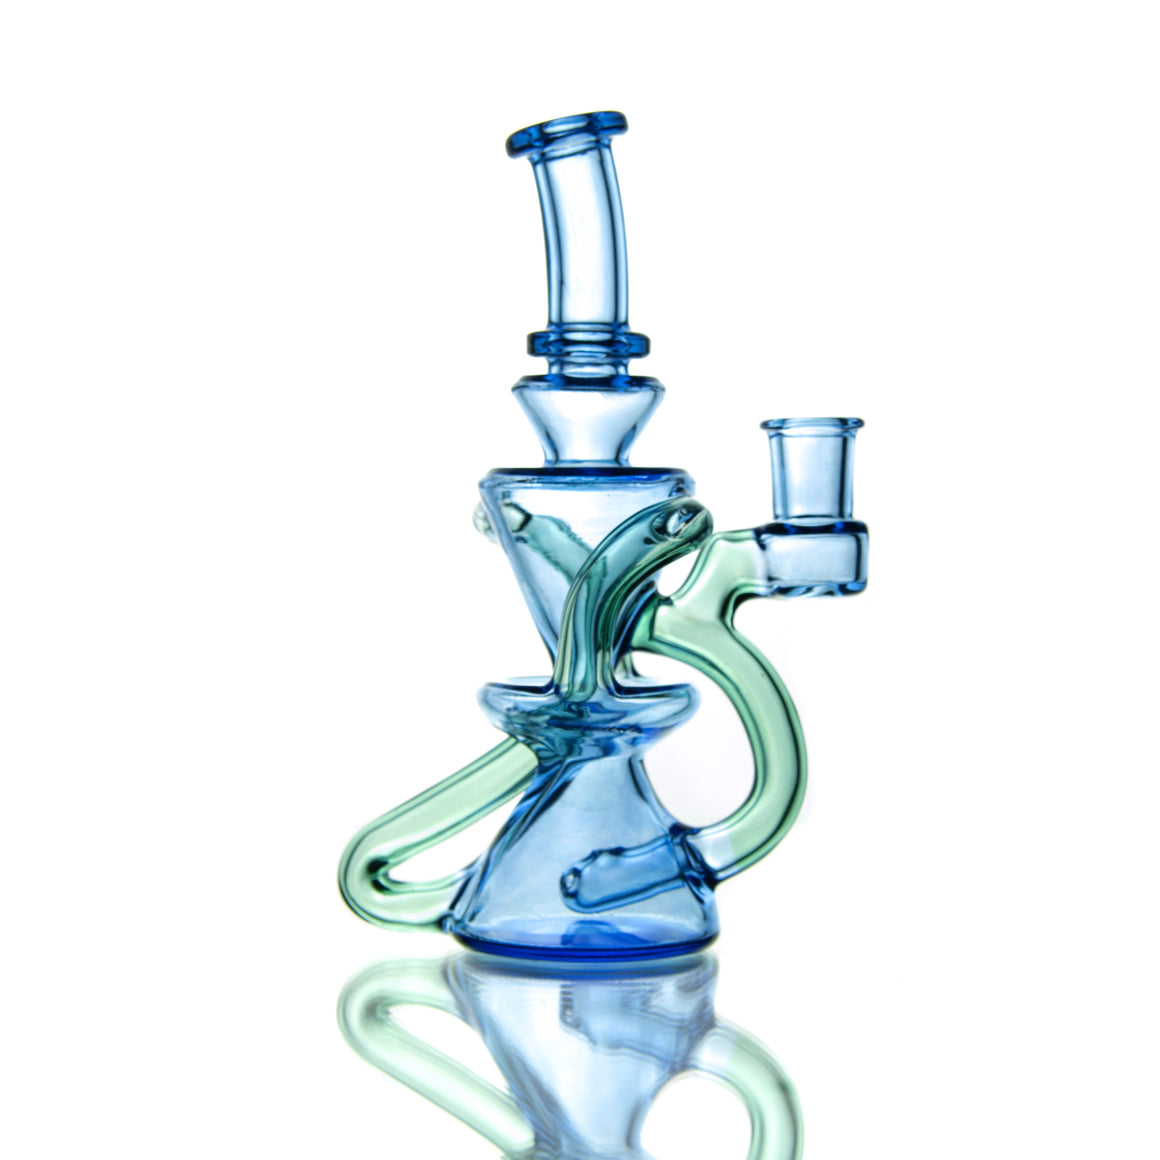 Mini Double-uptake Floating Recycler - Blue Dream/Meta-Terrania - 10mm Female